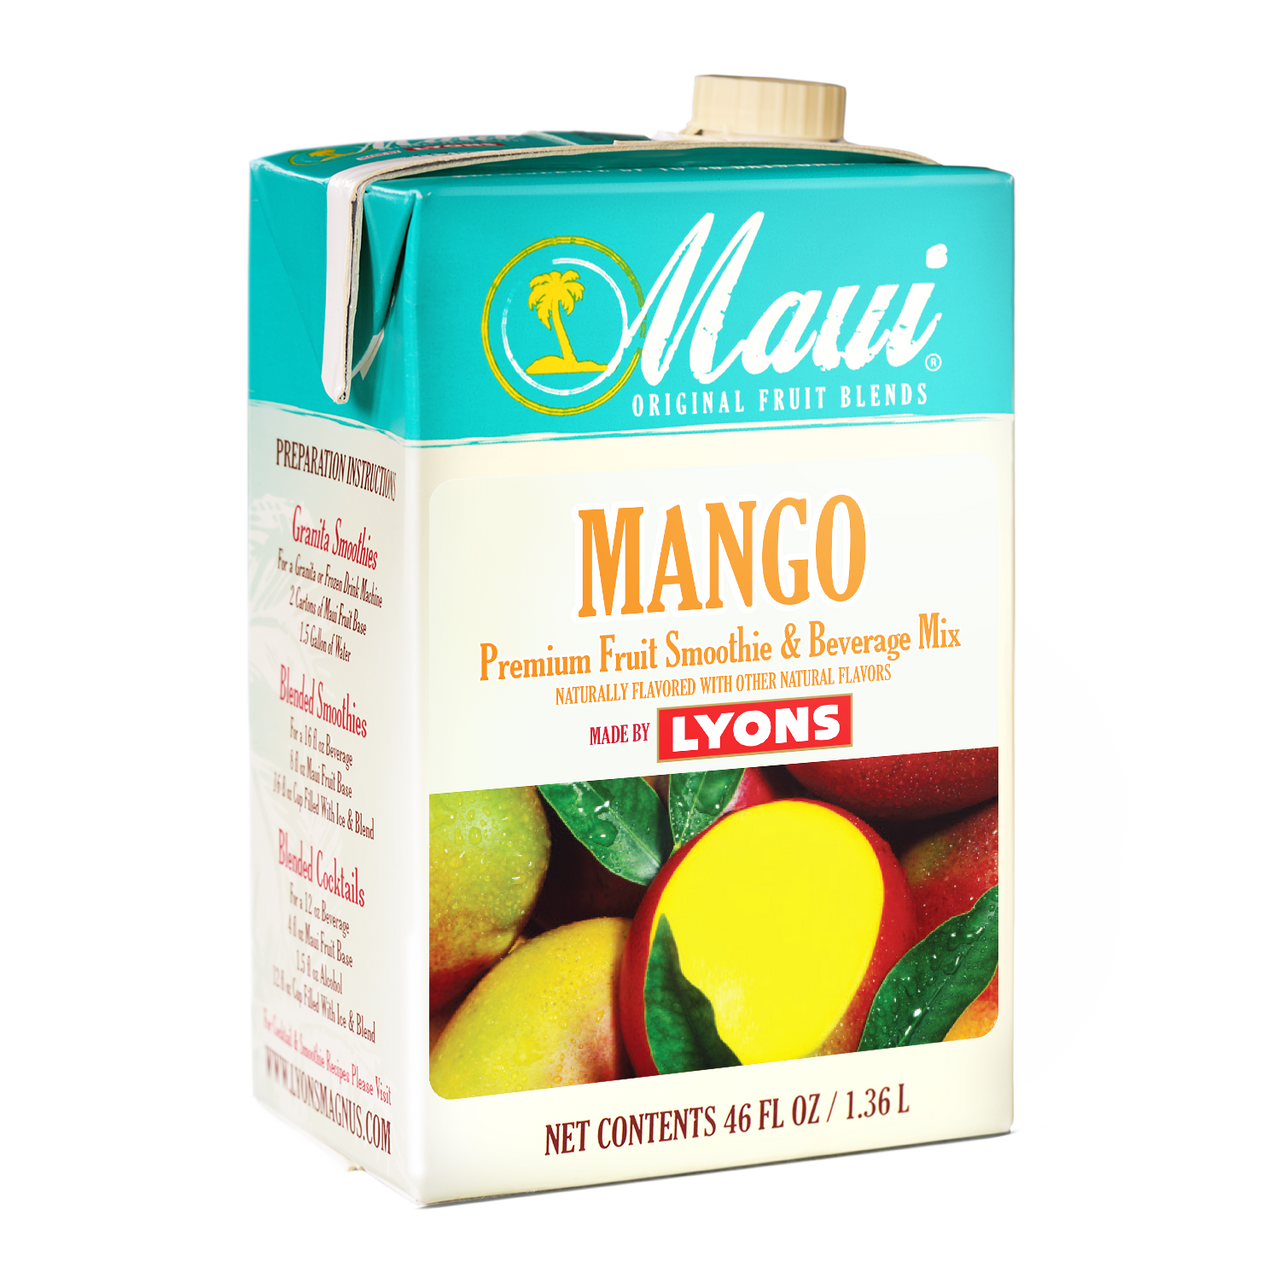 Mango Smoothie Mix